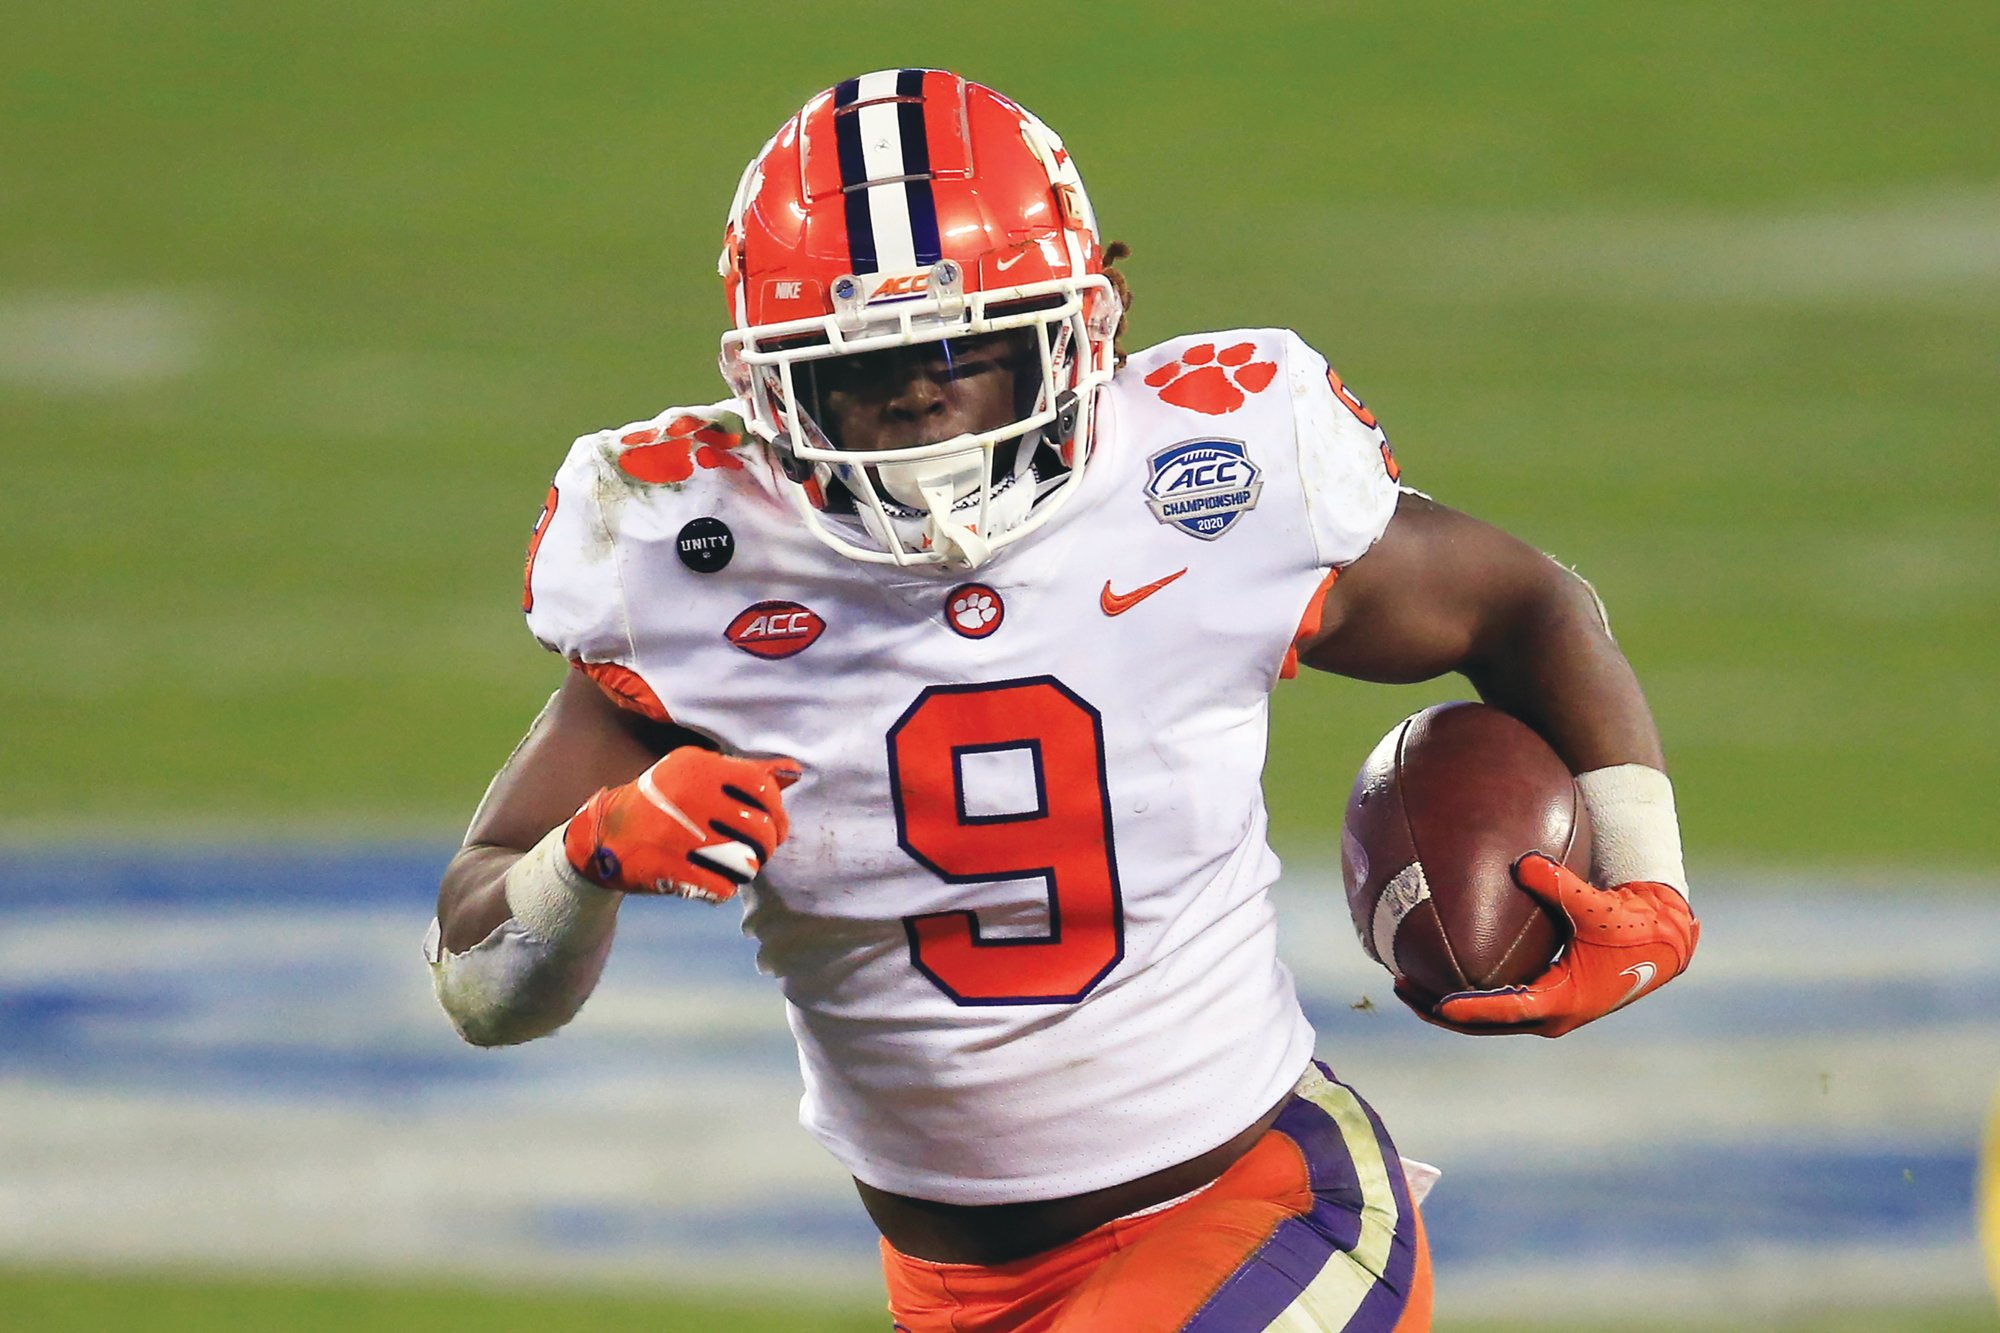 Clemson running back Travis Etienne (9) and the Tigers will face Ohio State in the Sugar Bowl on Friday without offensive coordinator Tony Elliott.